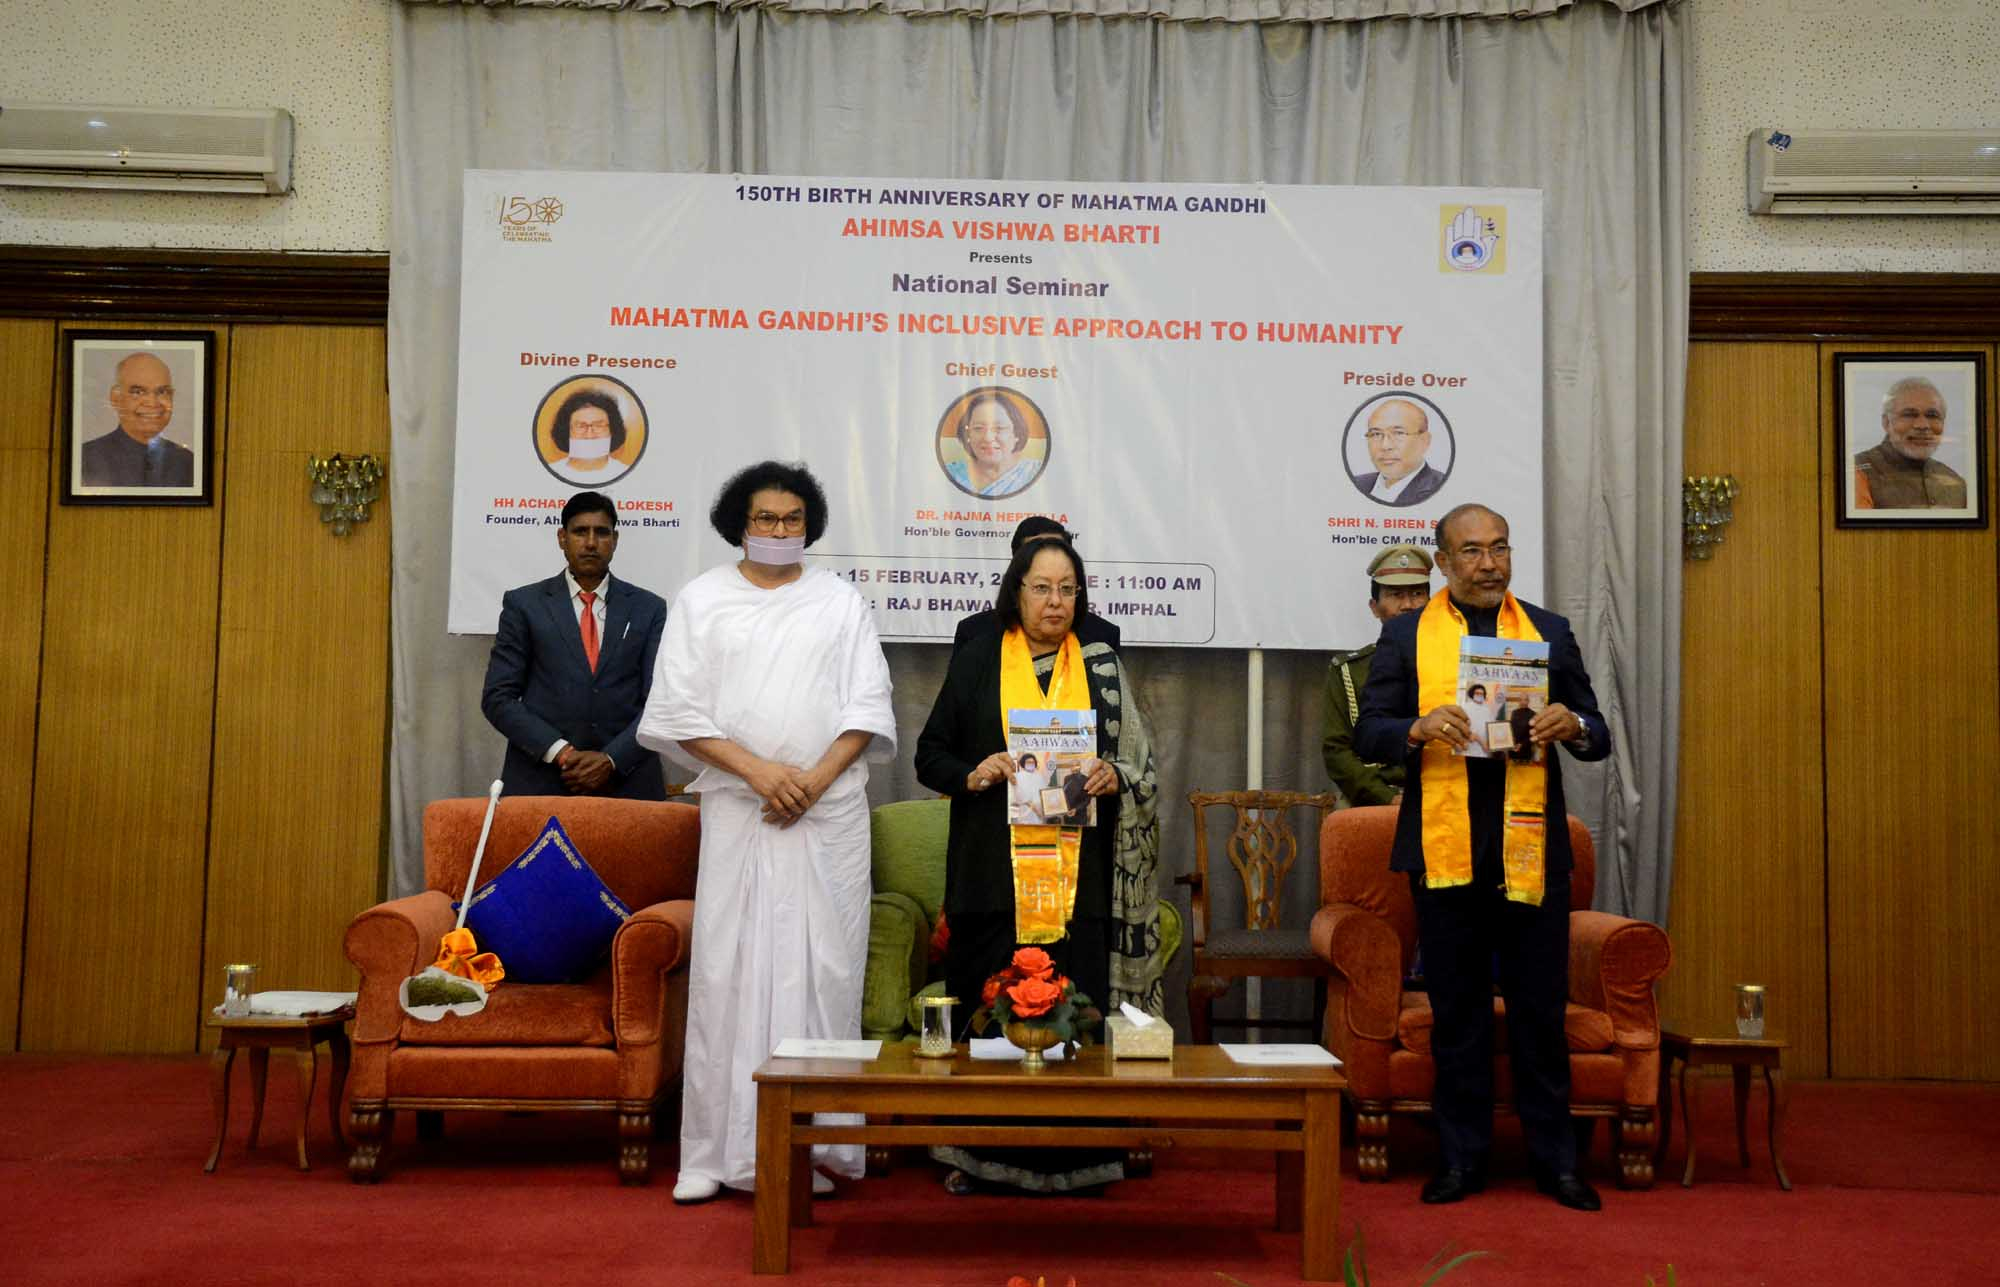 National Seminar on 'Mahatma Gandhi's inclusive approach to humanity' held